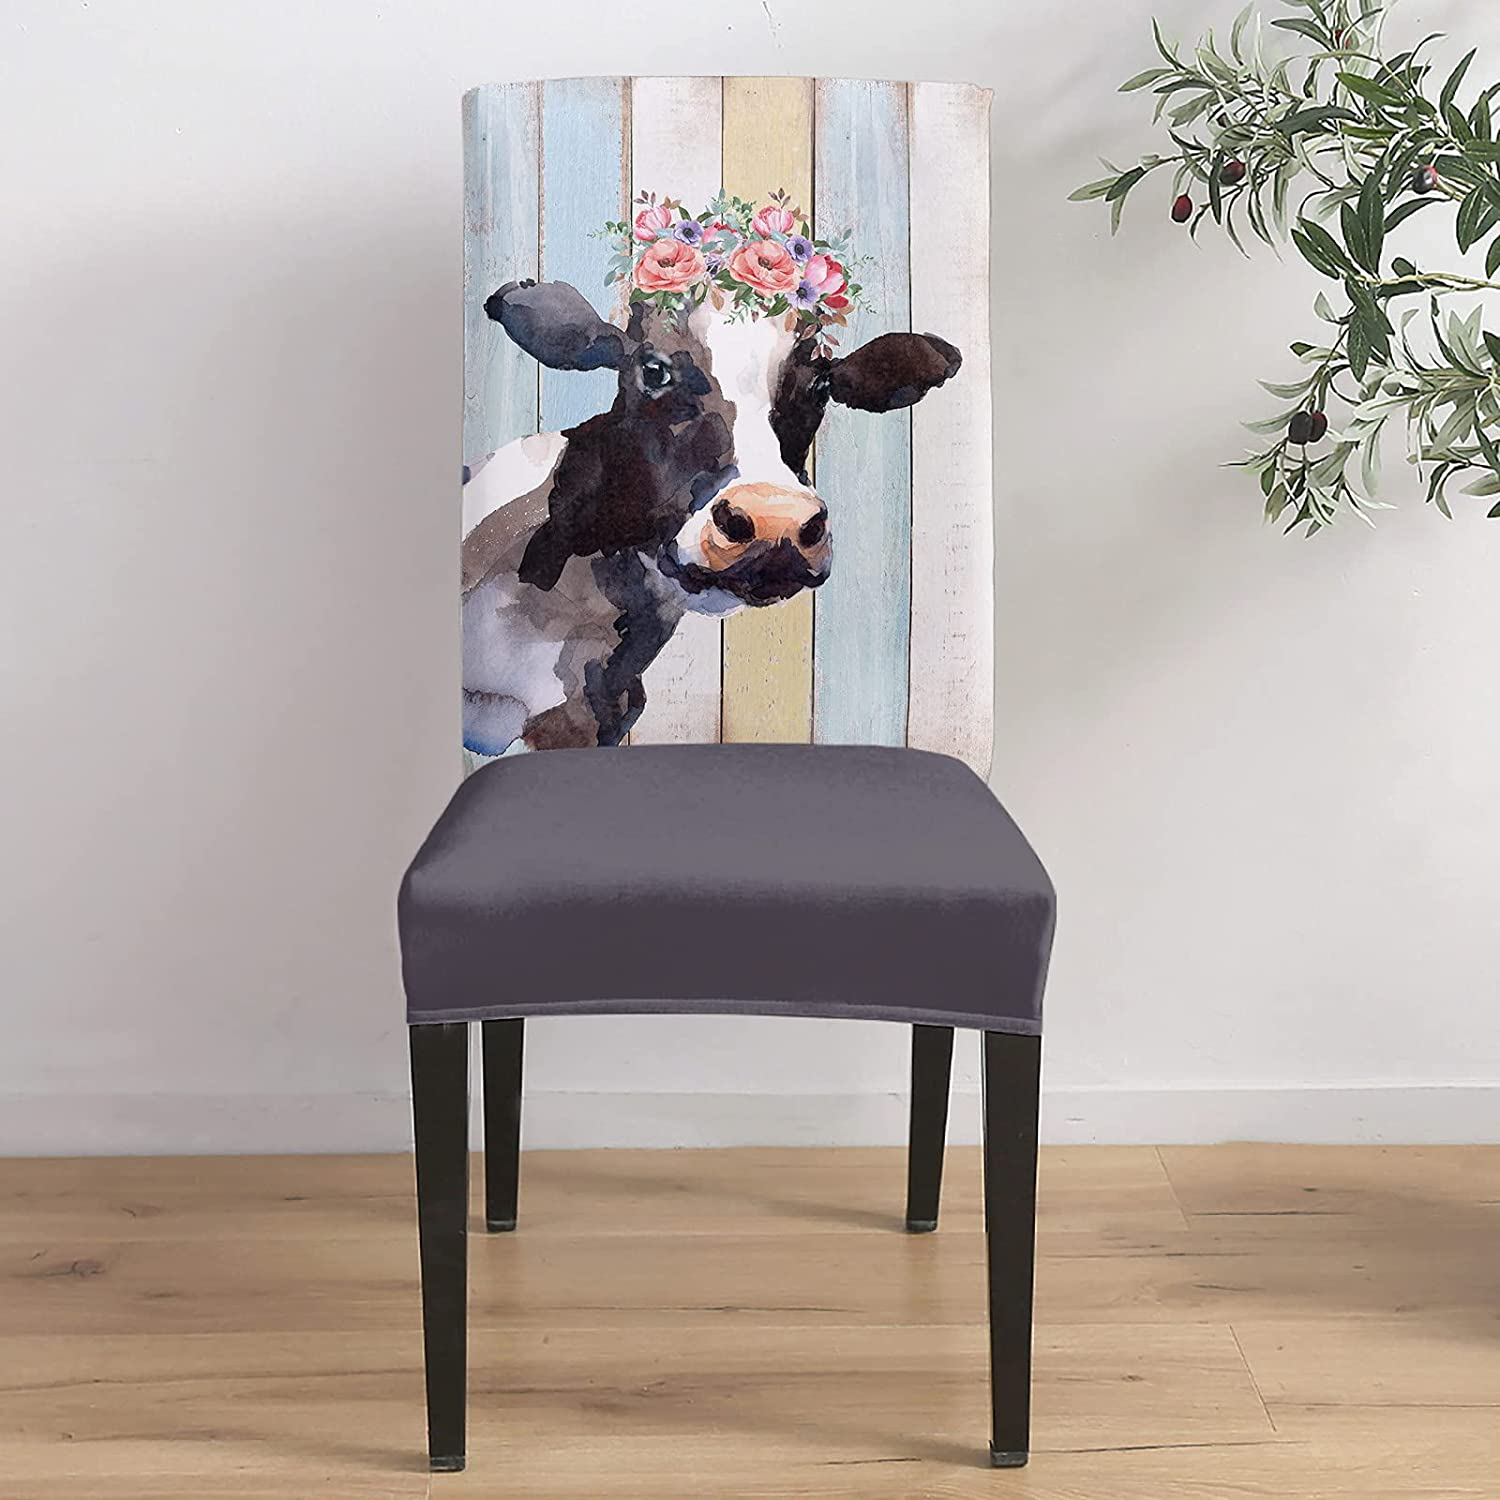 Dining Chair Covers Colorado Springs Mall Protector Stretch Dedication Washable Removable Cu Seat